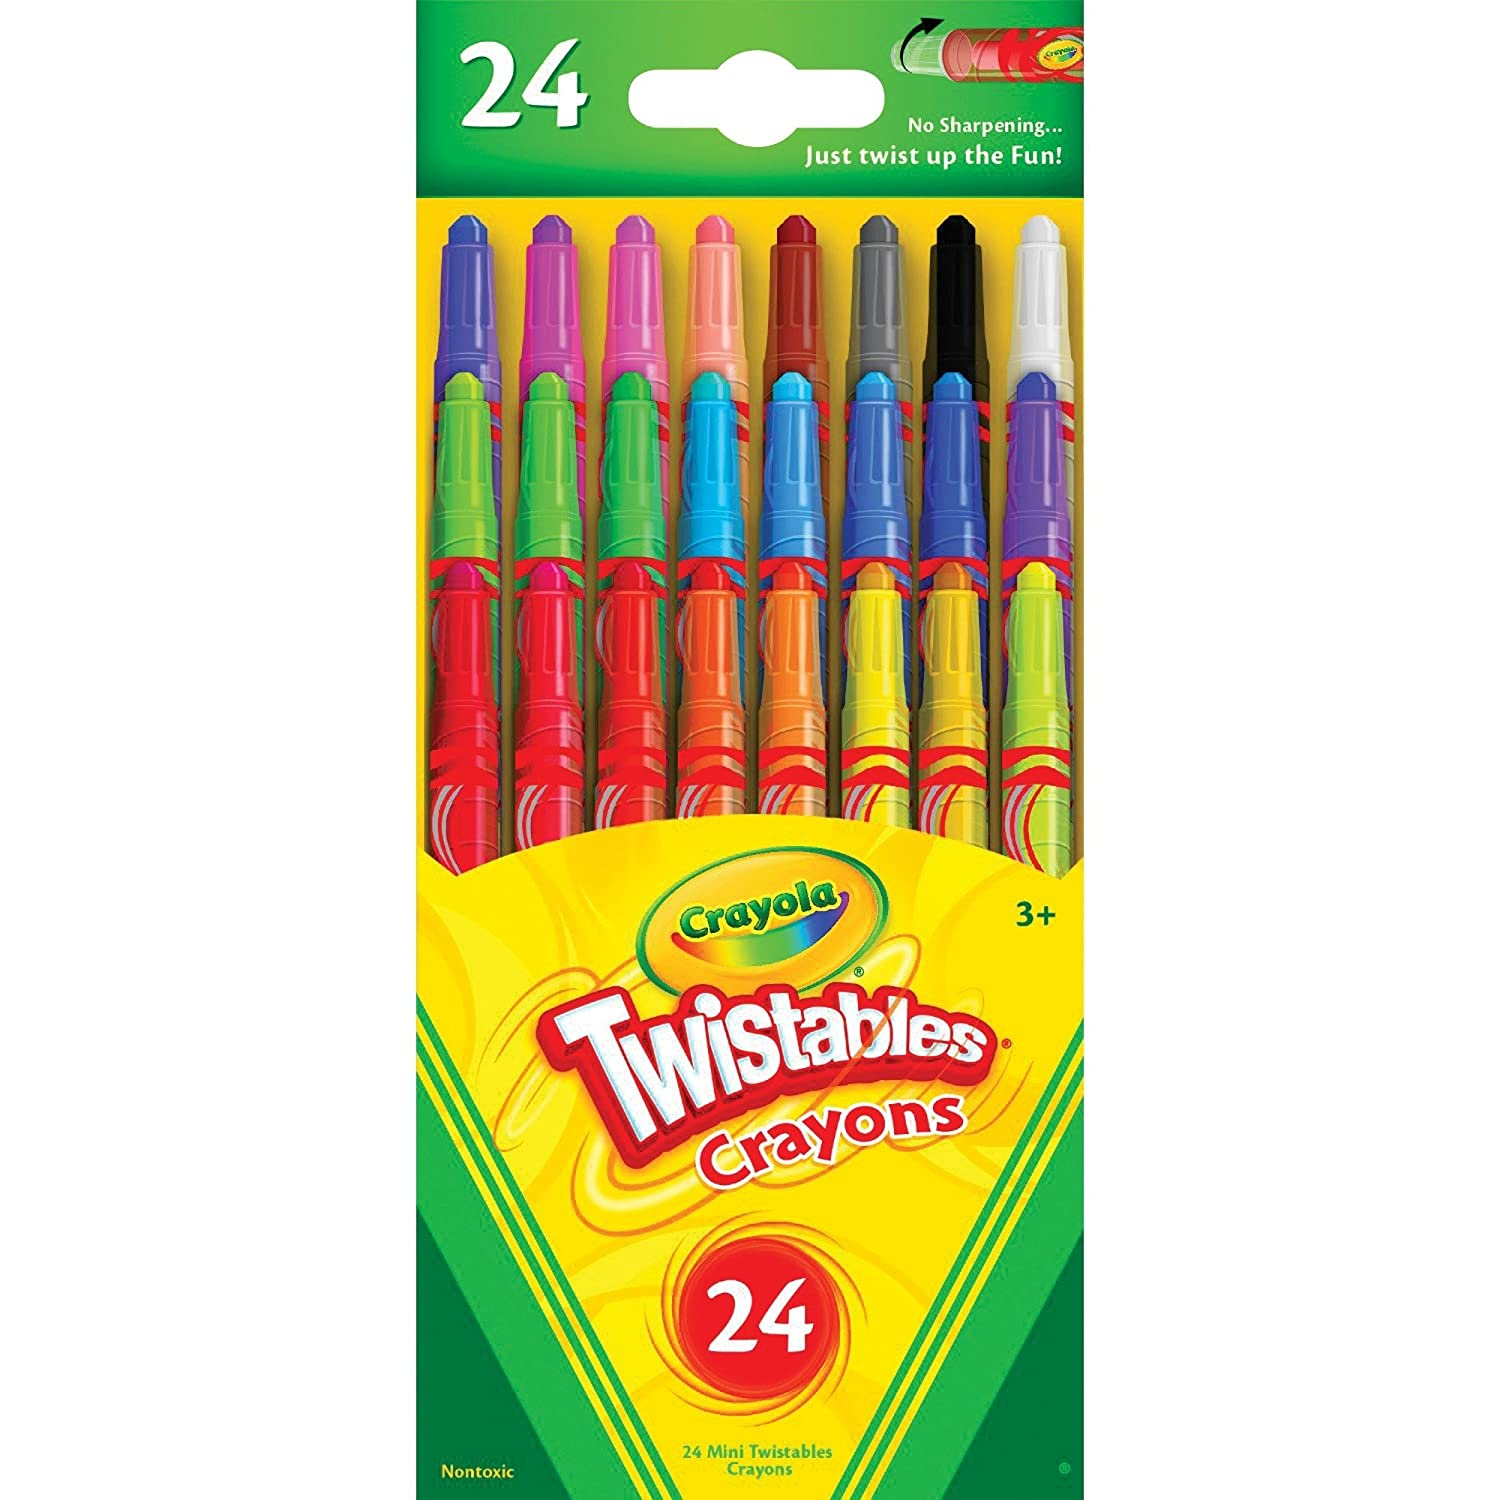 24 Count Crayola Crayons Twistable Mini Crayons 24 Count Includes 5 Color Flag Set